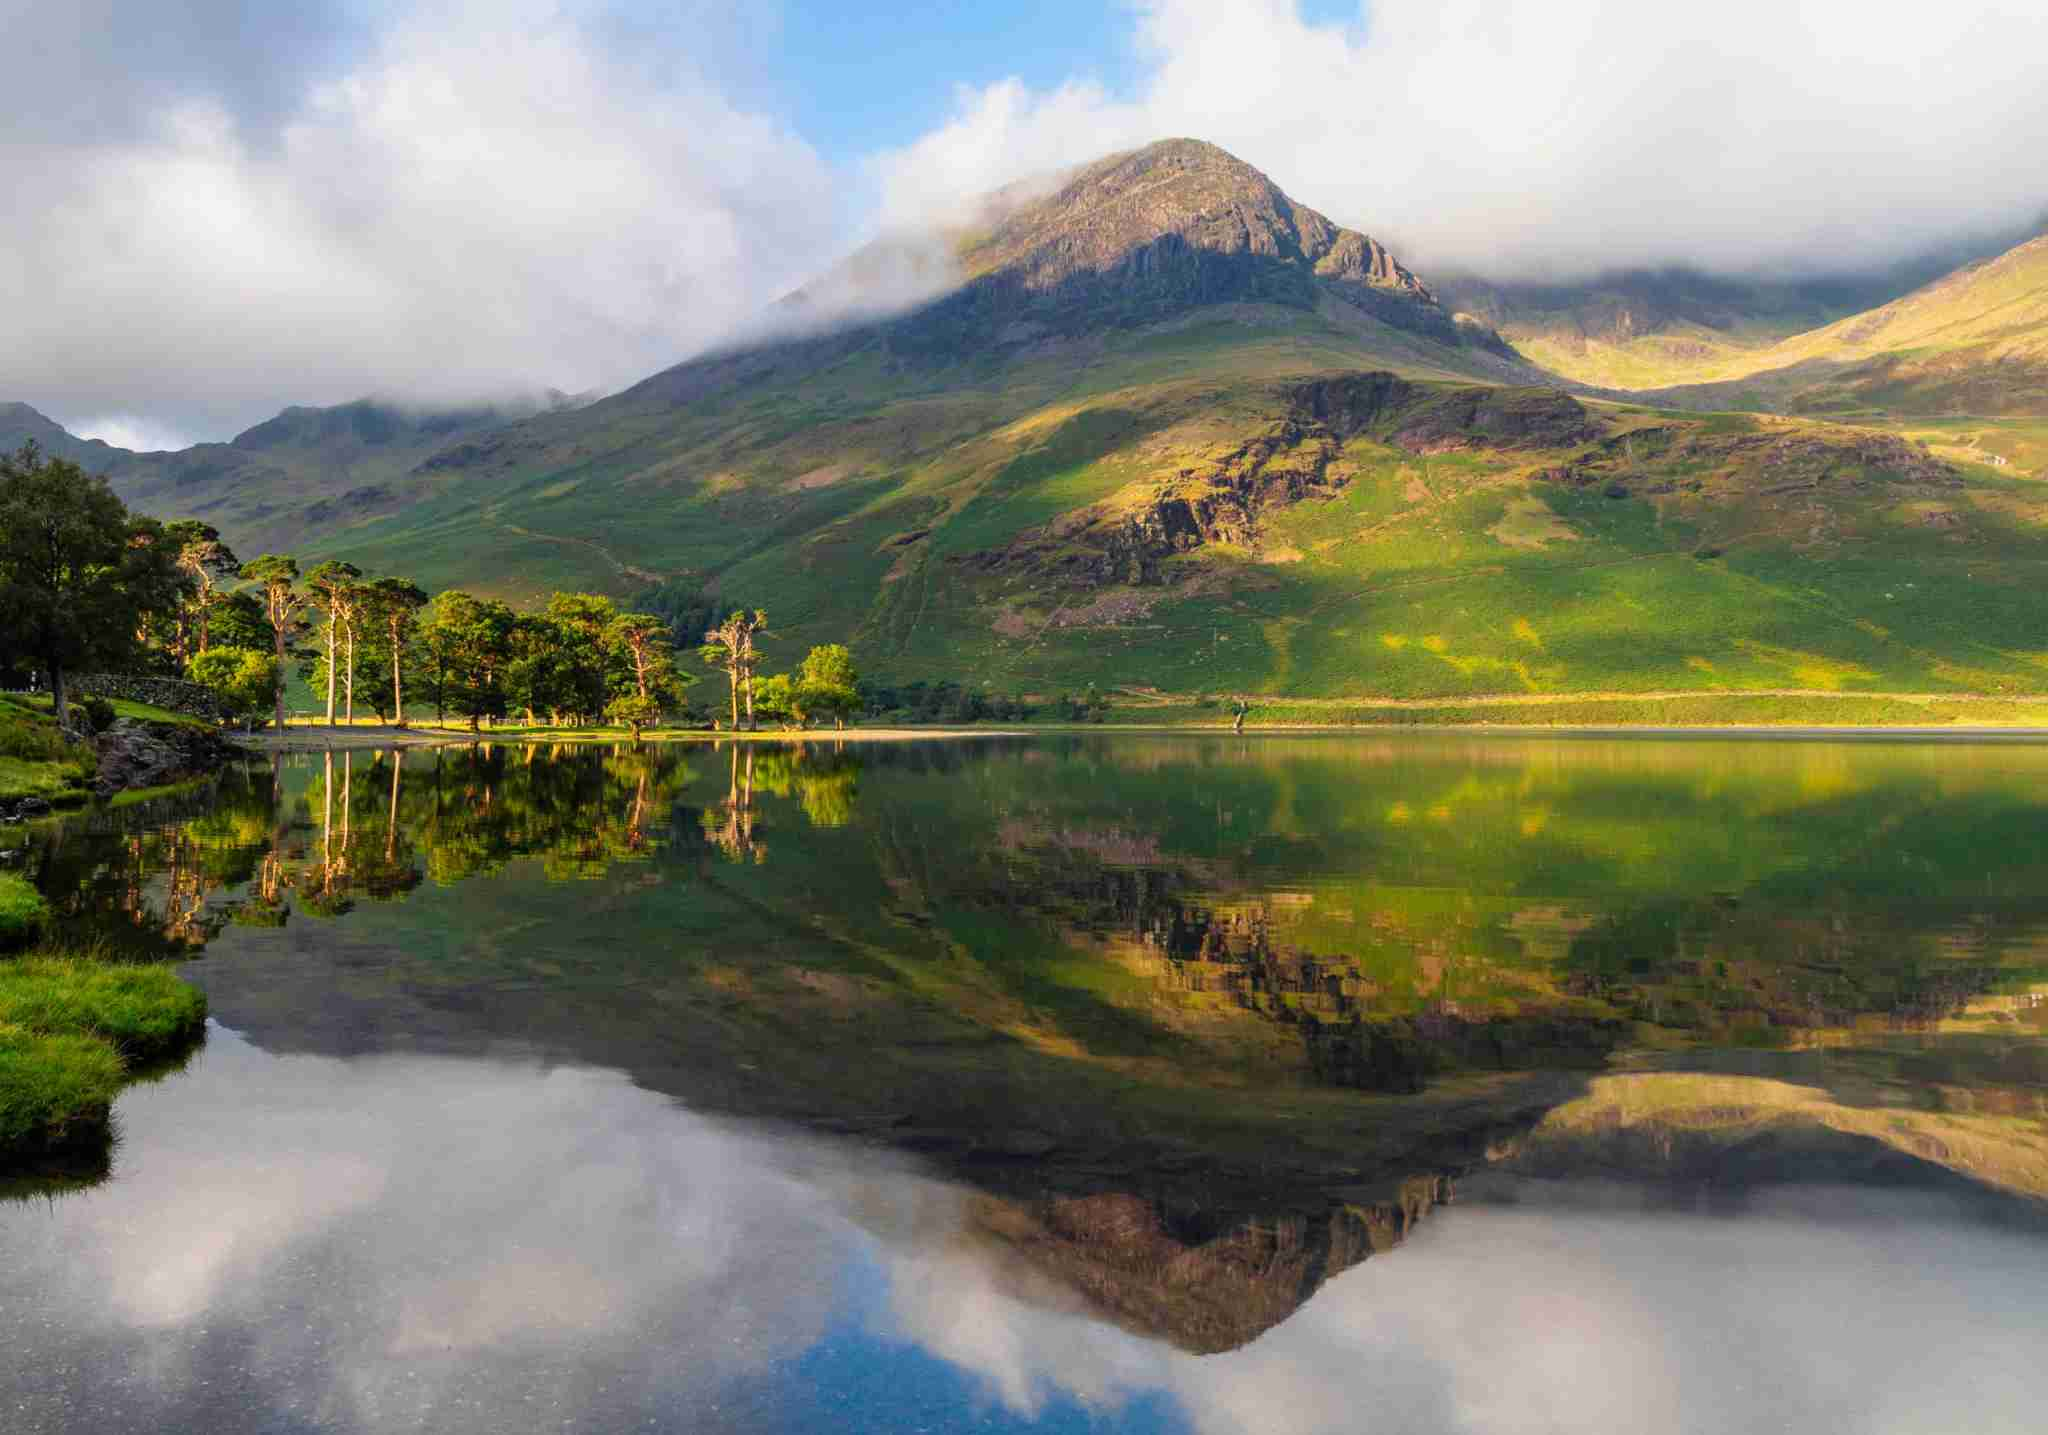 Dawn breaks over Buttermere, in the English Lake District. (Photo by simonbradfield/Getty Images)